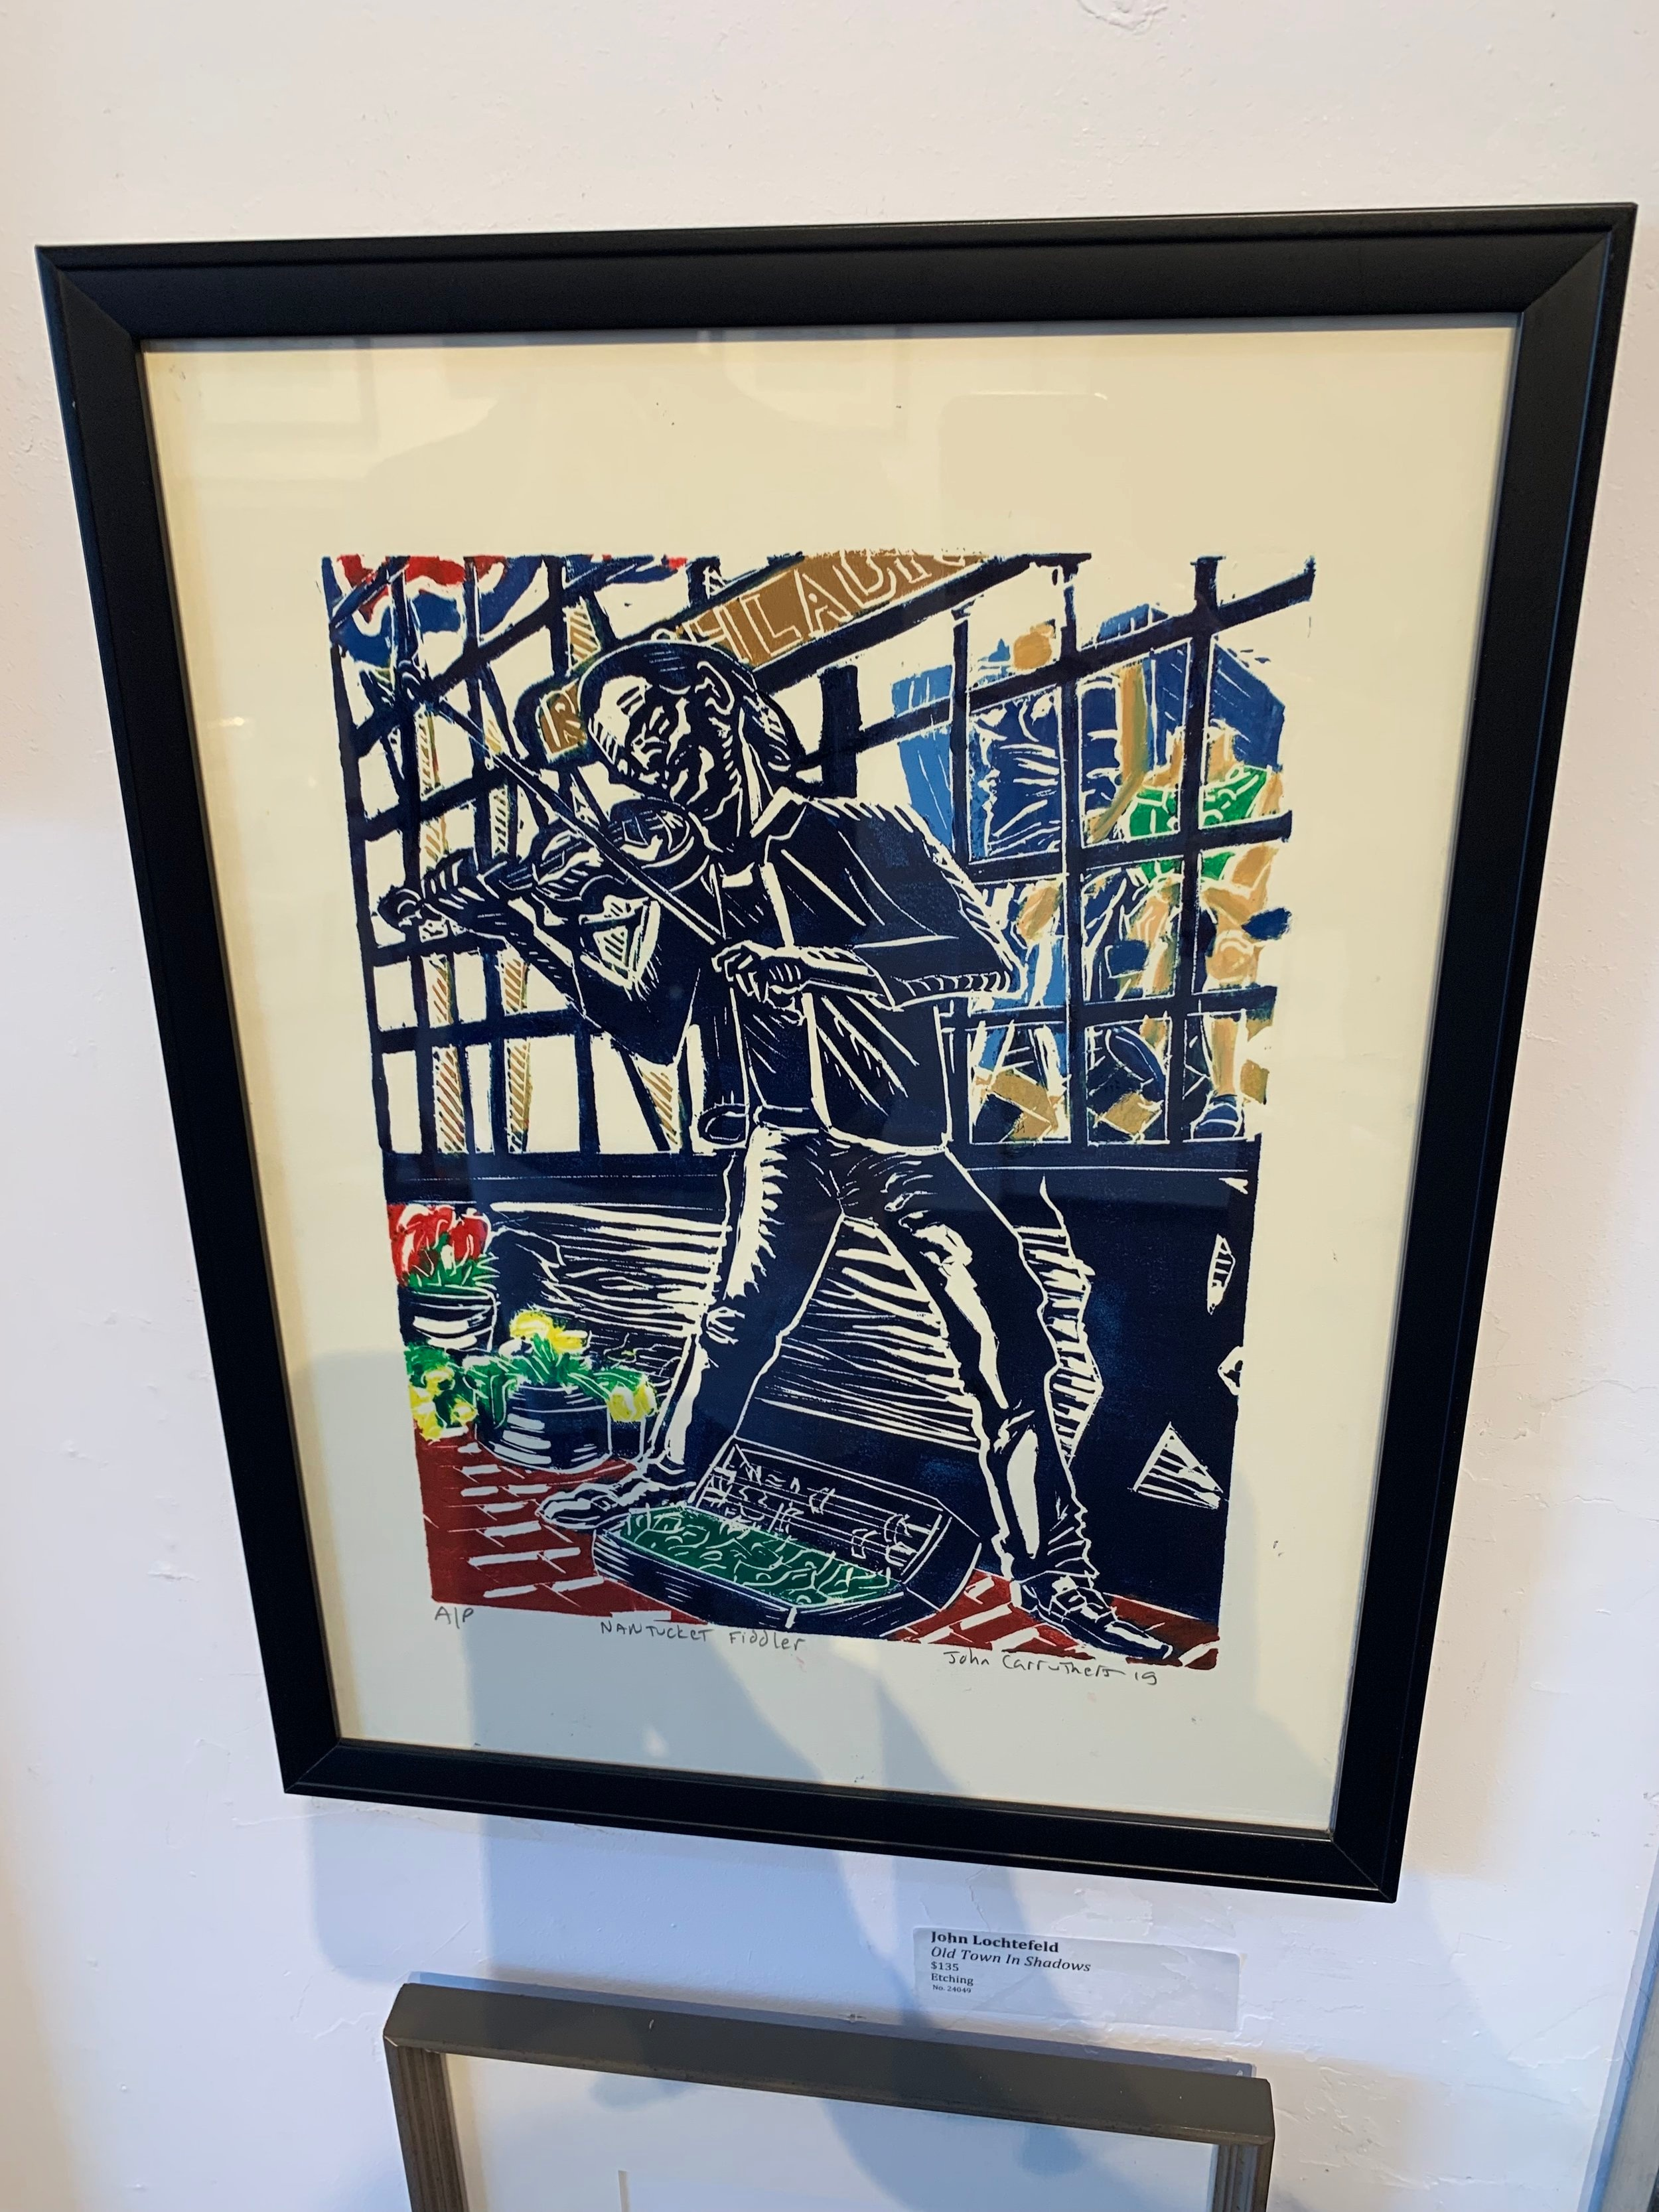 {Our latest piece from the artists association of Nantucket - a unique woodblock print }